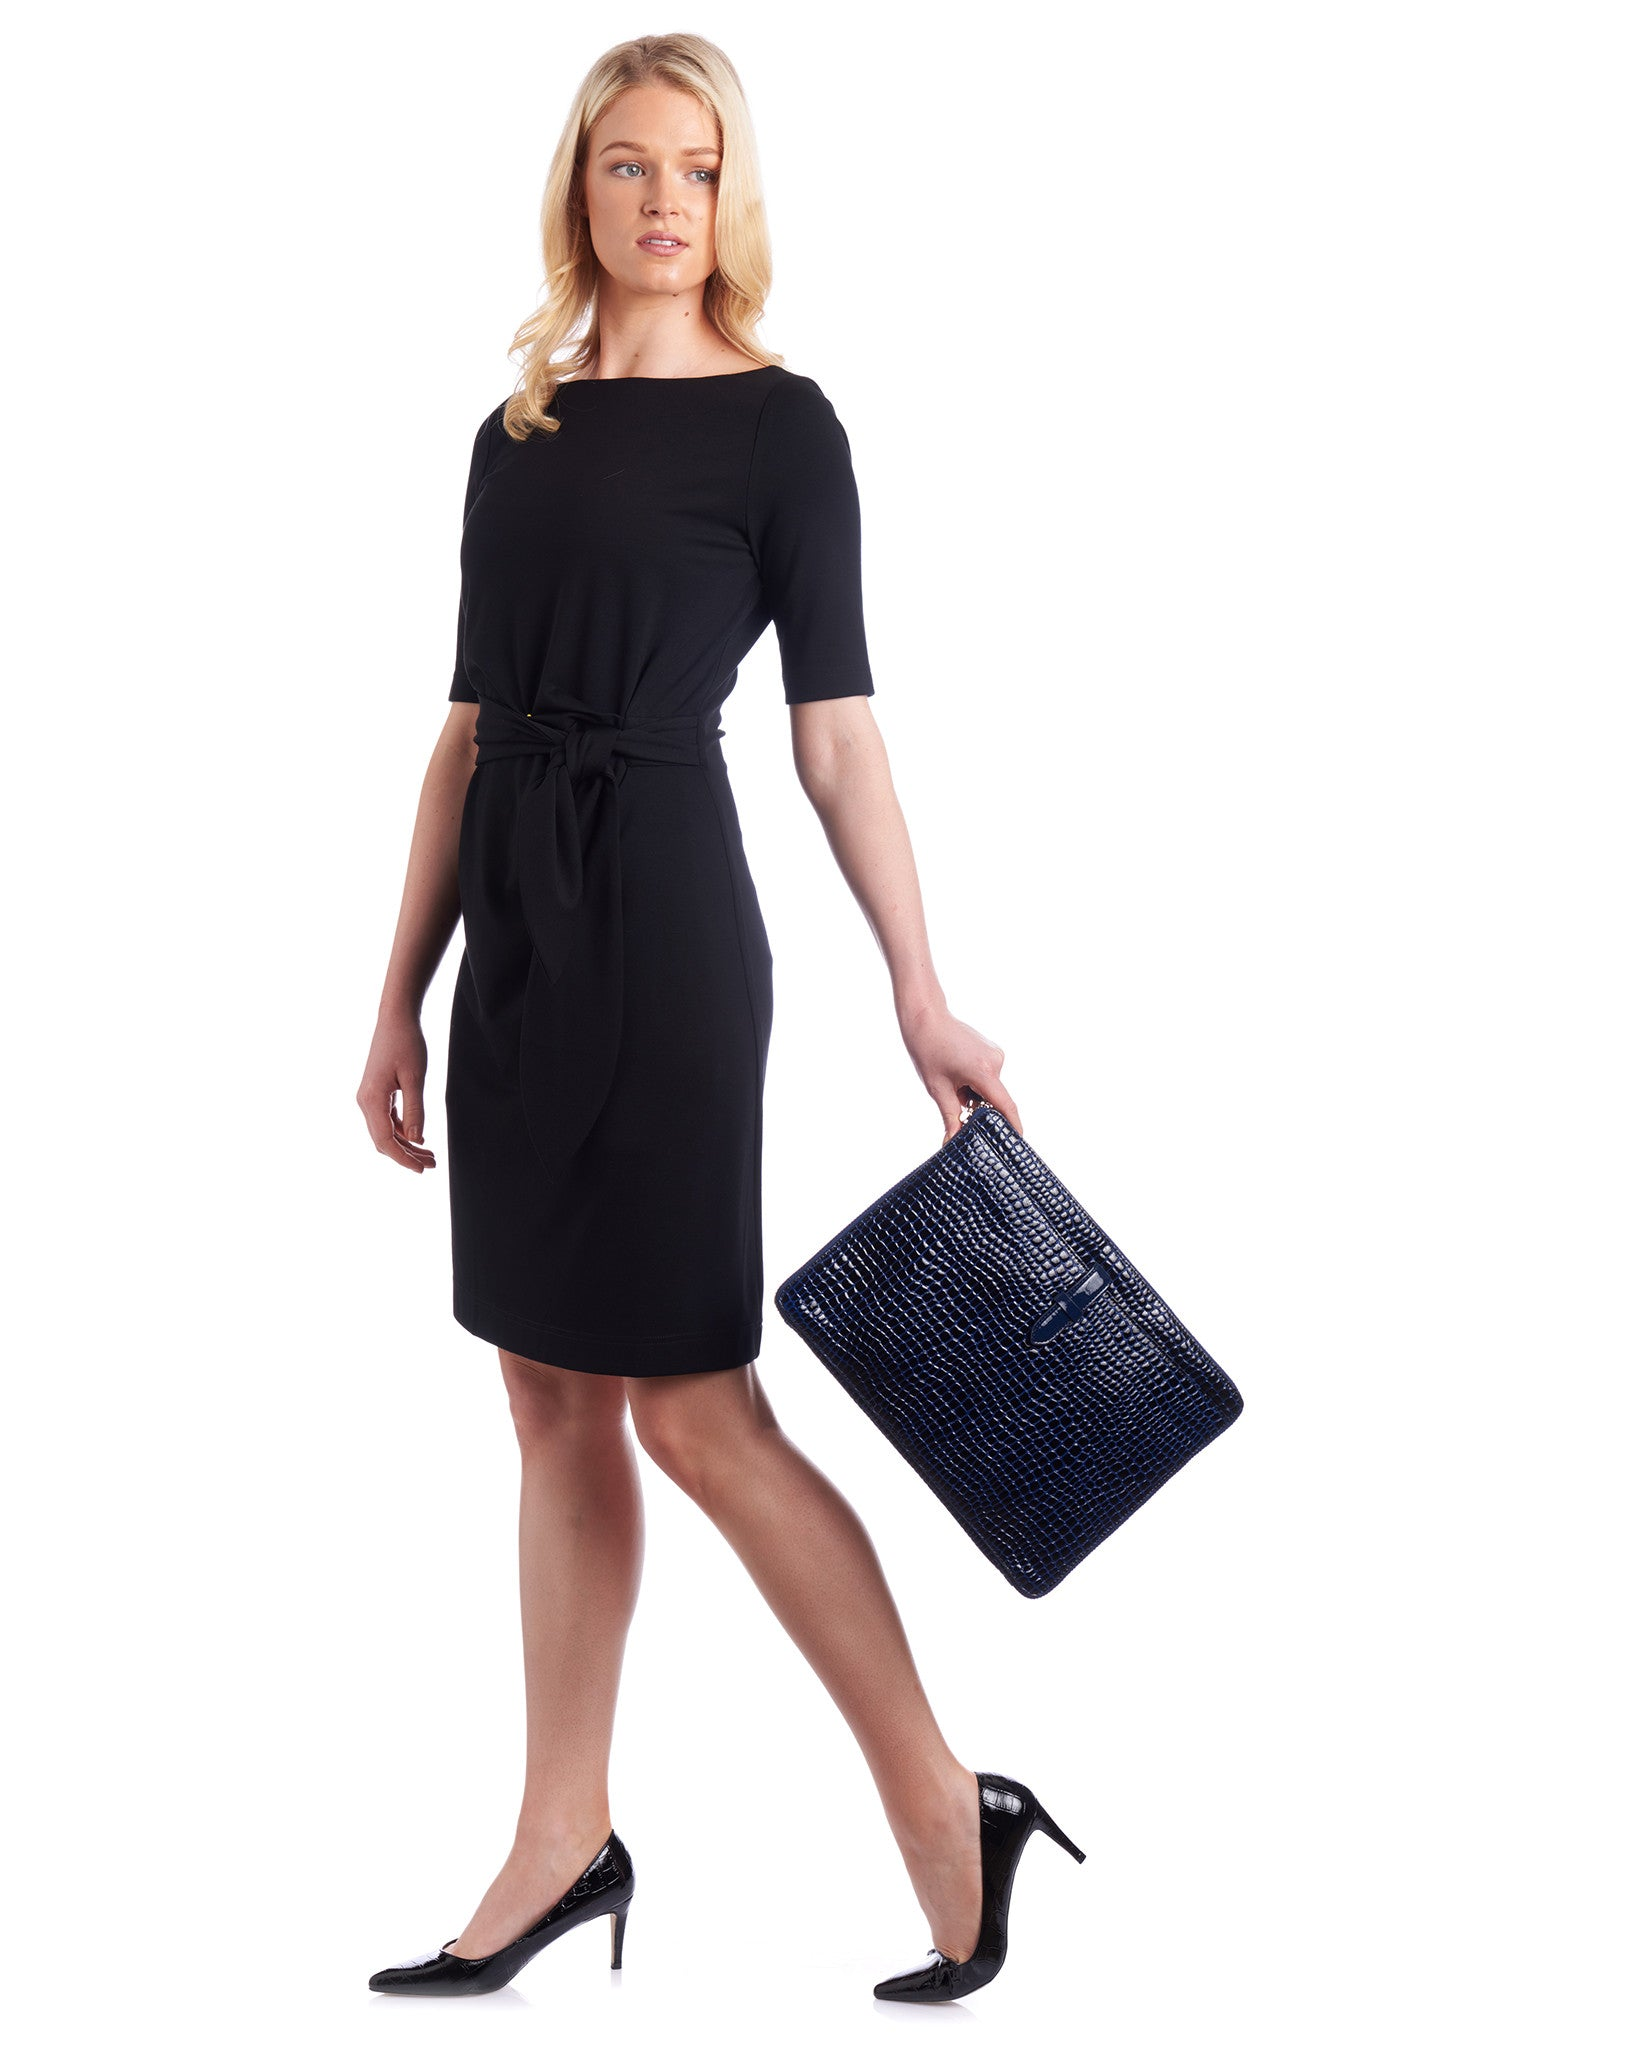 This Tahlo dress is the perfect work dress to look classic and ready for business